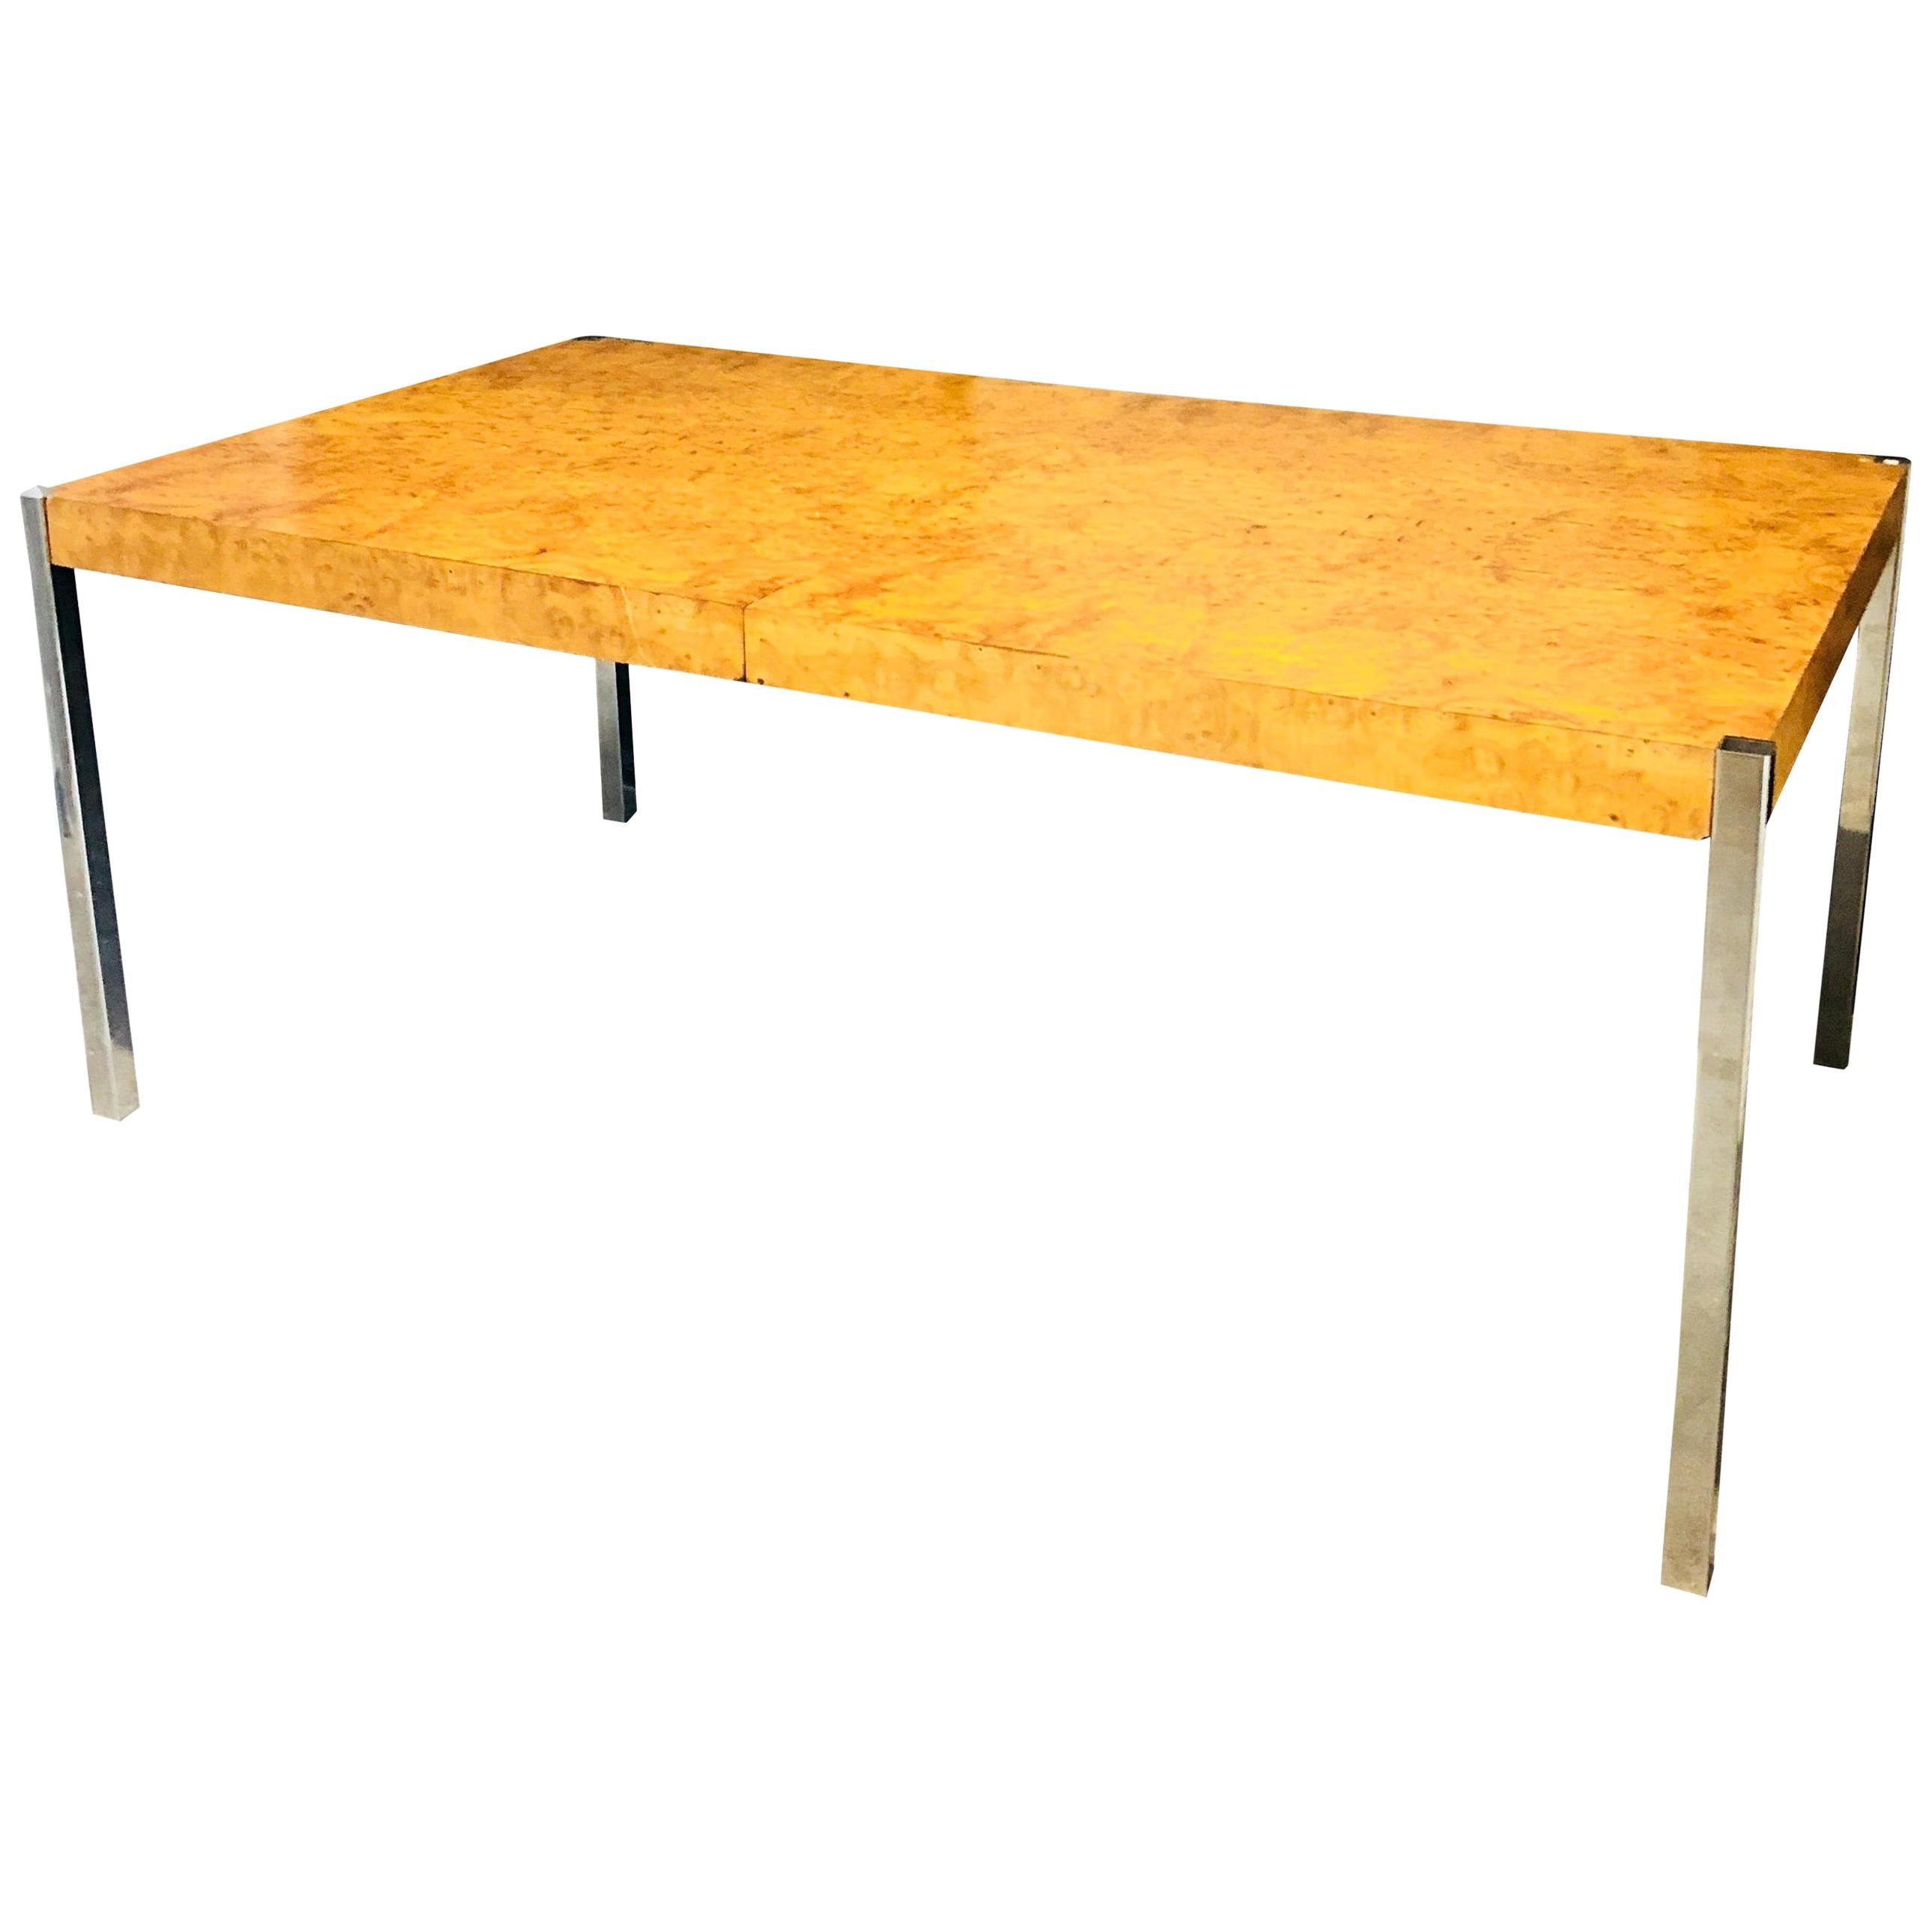 Milo Baughman Style Burl Wood and Chrome Dining Table or Writing Table